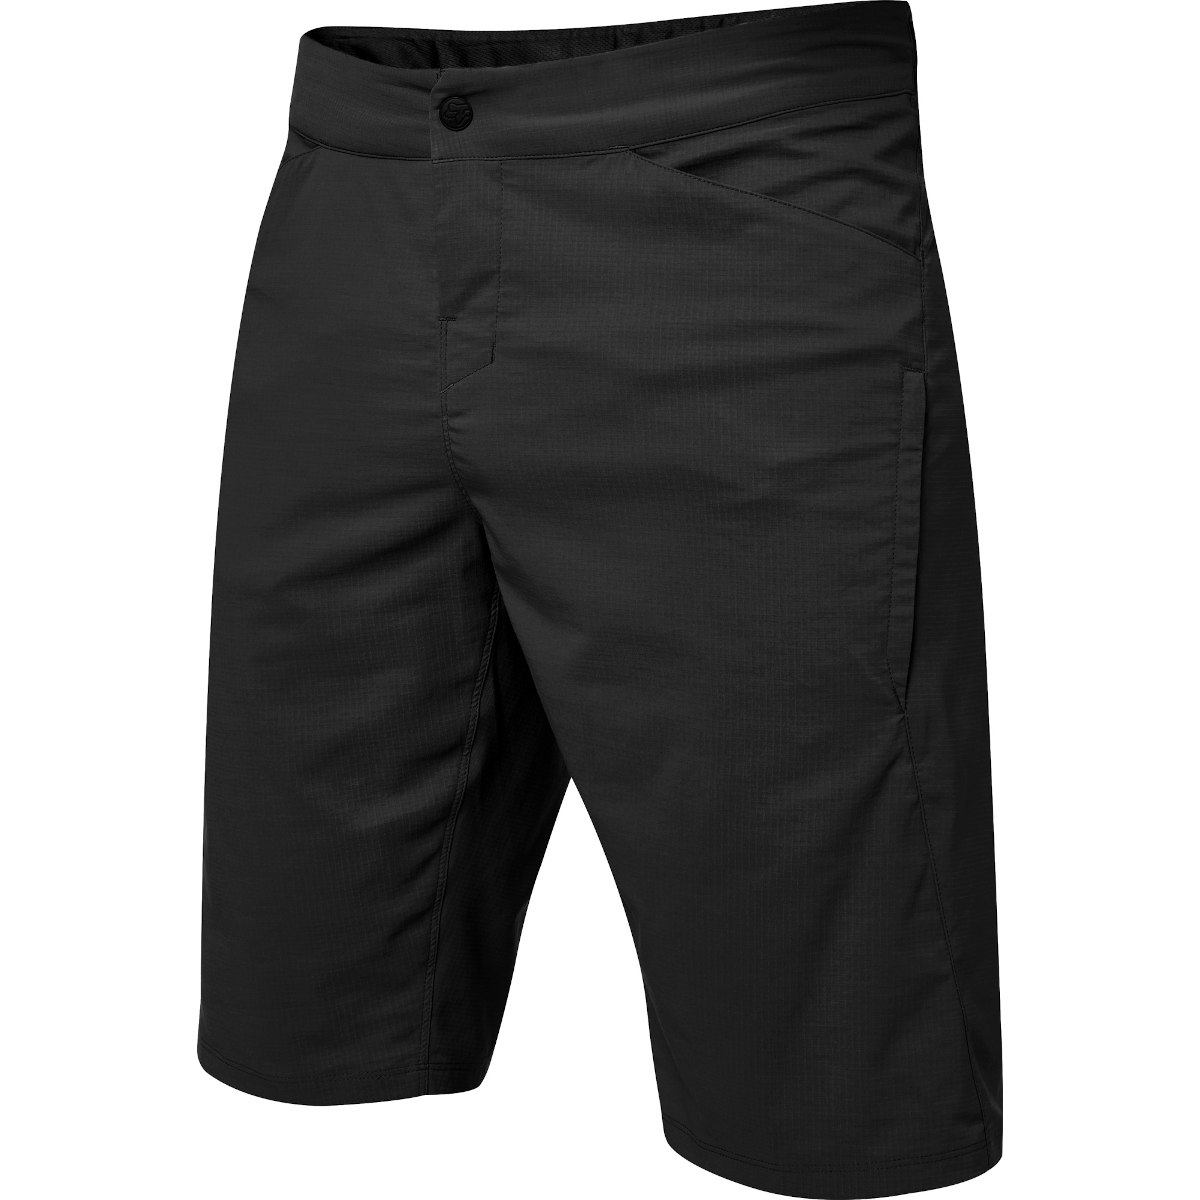 FOX Ranger Utility Shorts with Liner - black